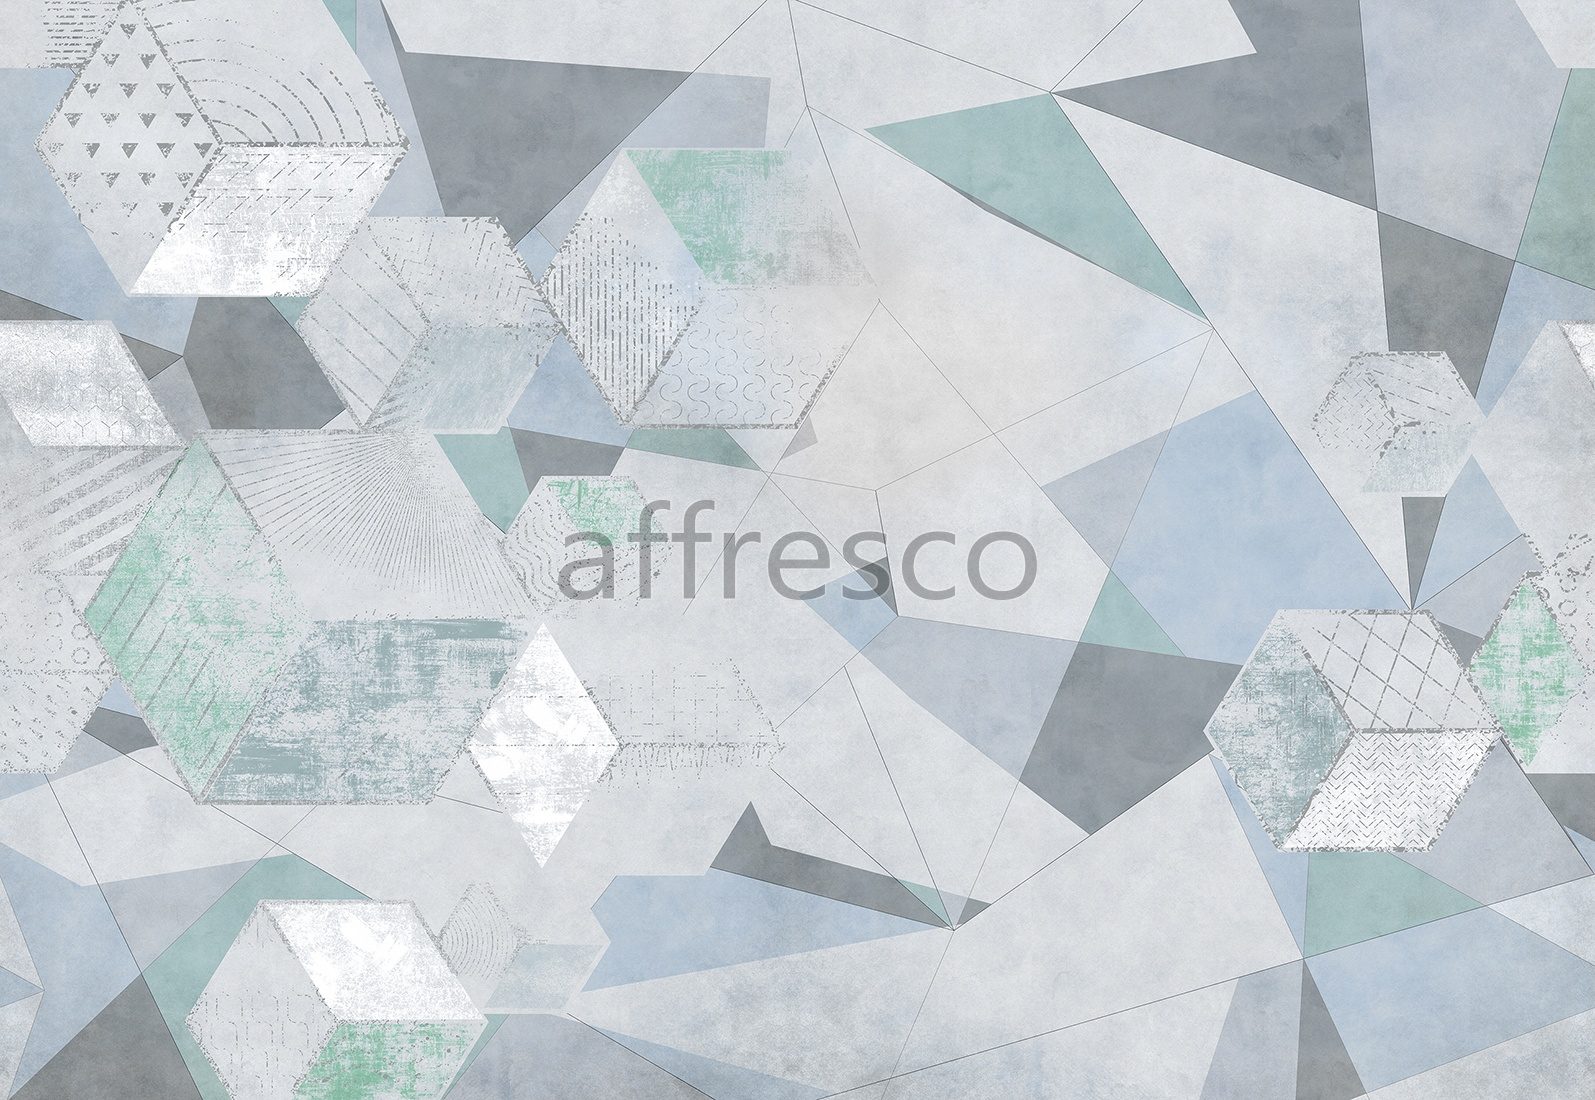 ID136339 | Geometry |  | Affresco Factory